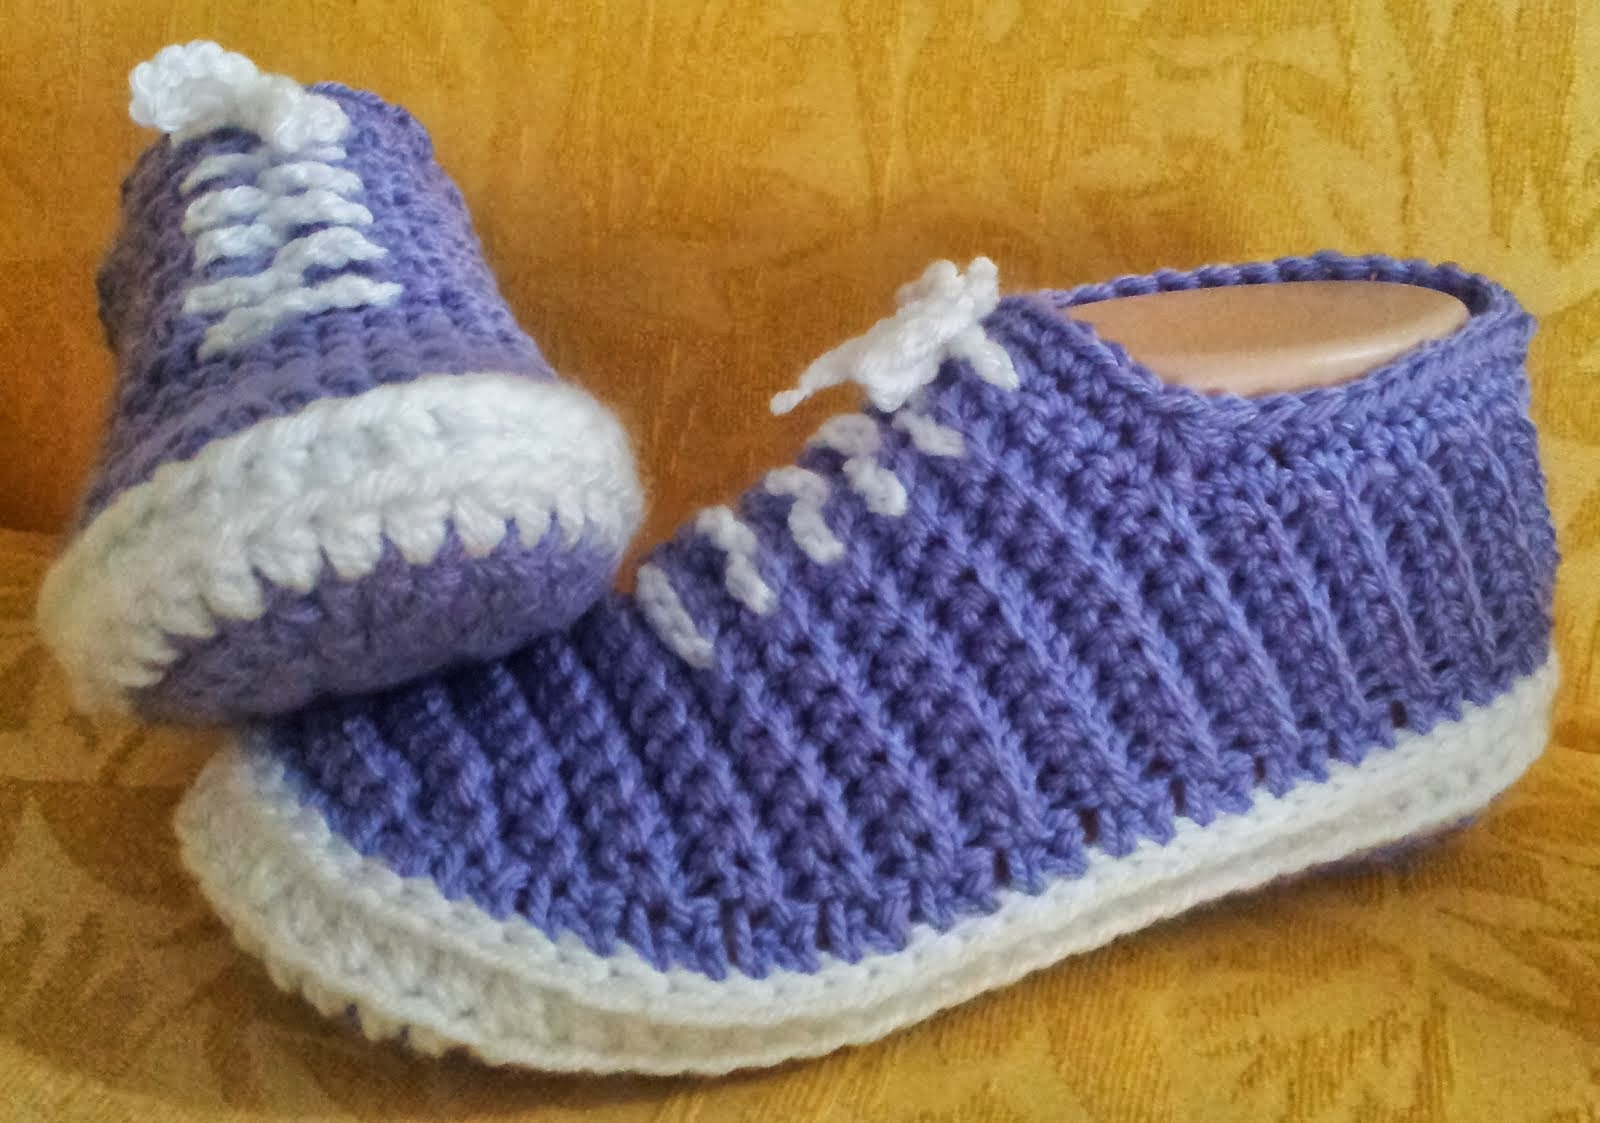 Crochet Slippers : This pattern is cheap, not free. Click on the links below to find it.